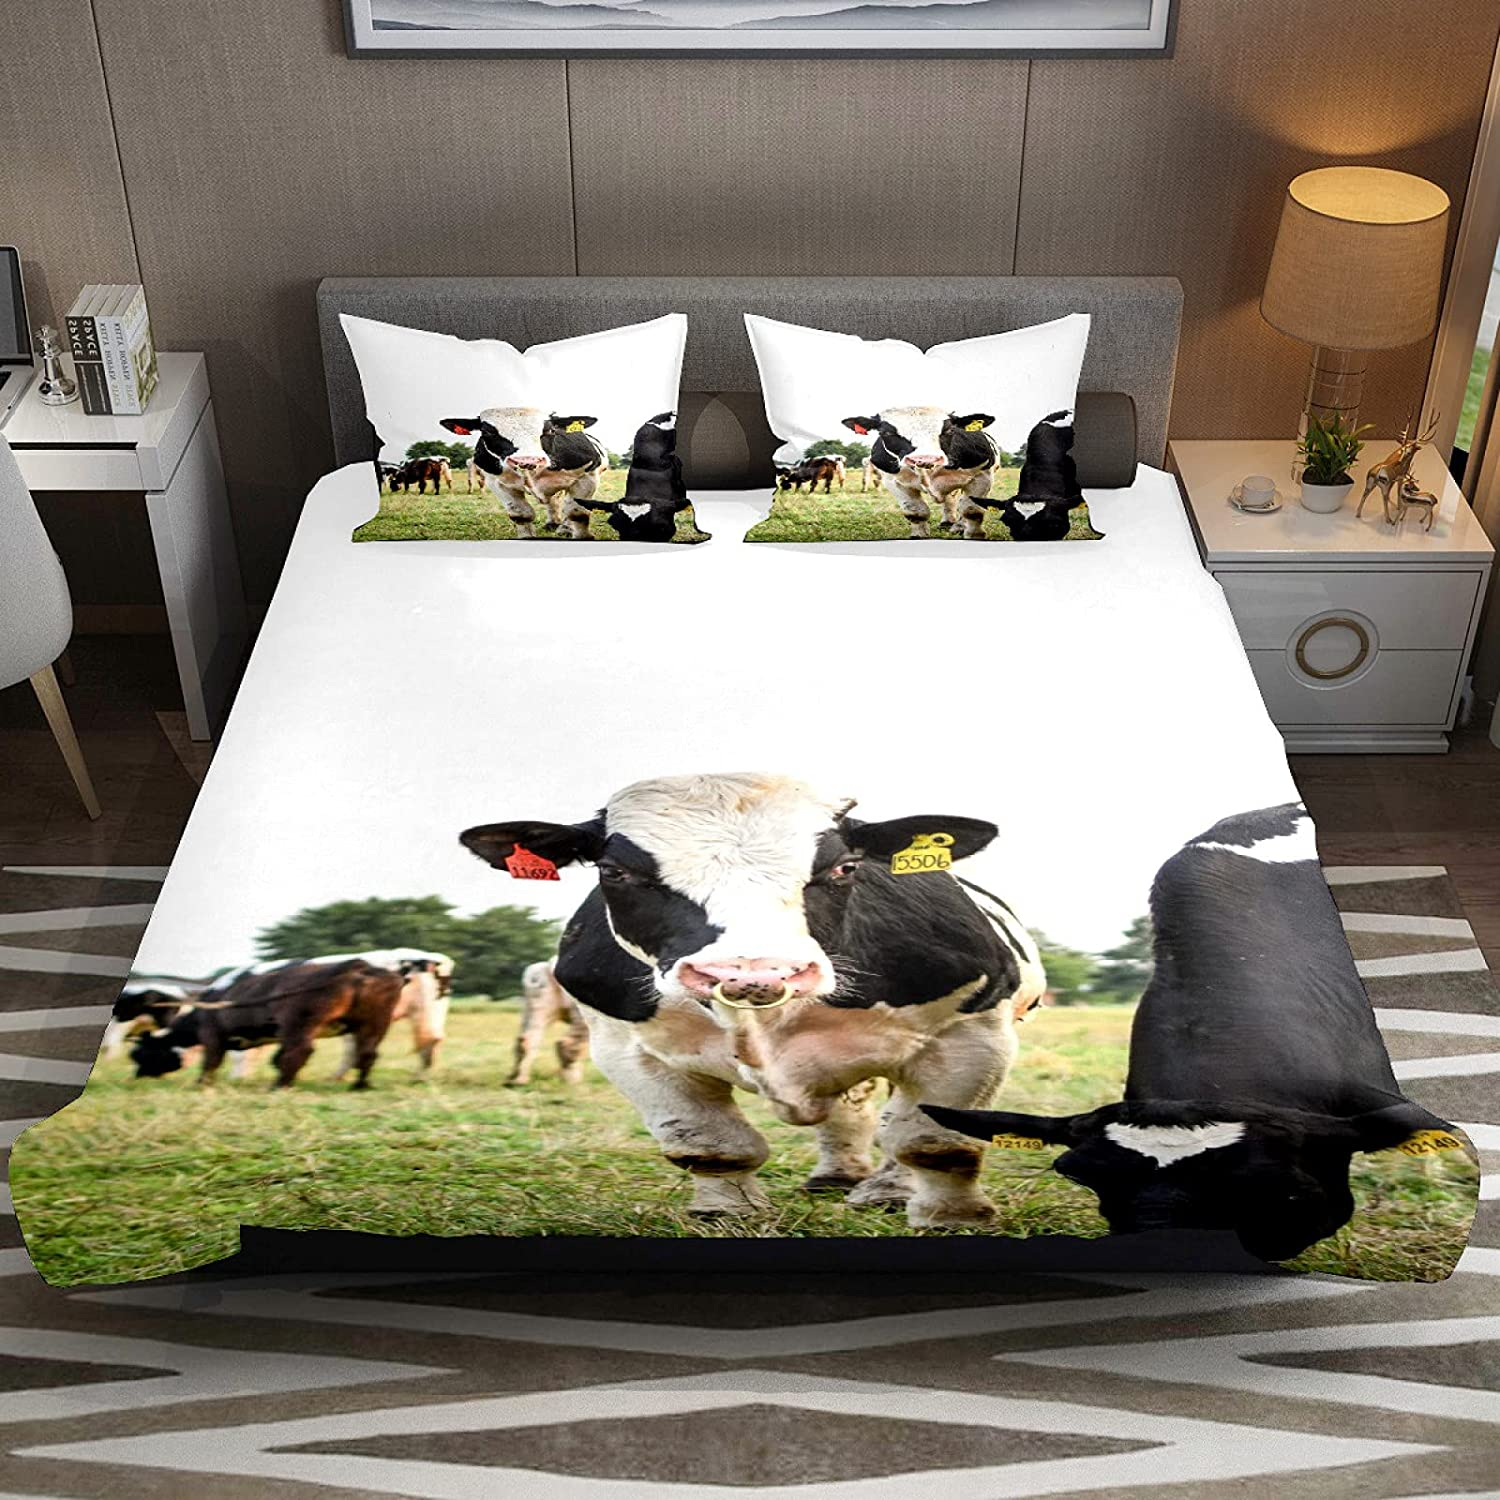 N\O Farm Cow Meadow Field Bedding Sets Very popular P Breathable 3 Bedclothes Translated